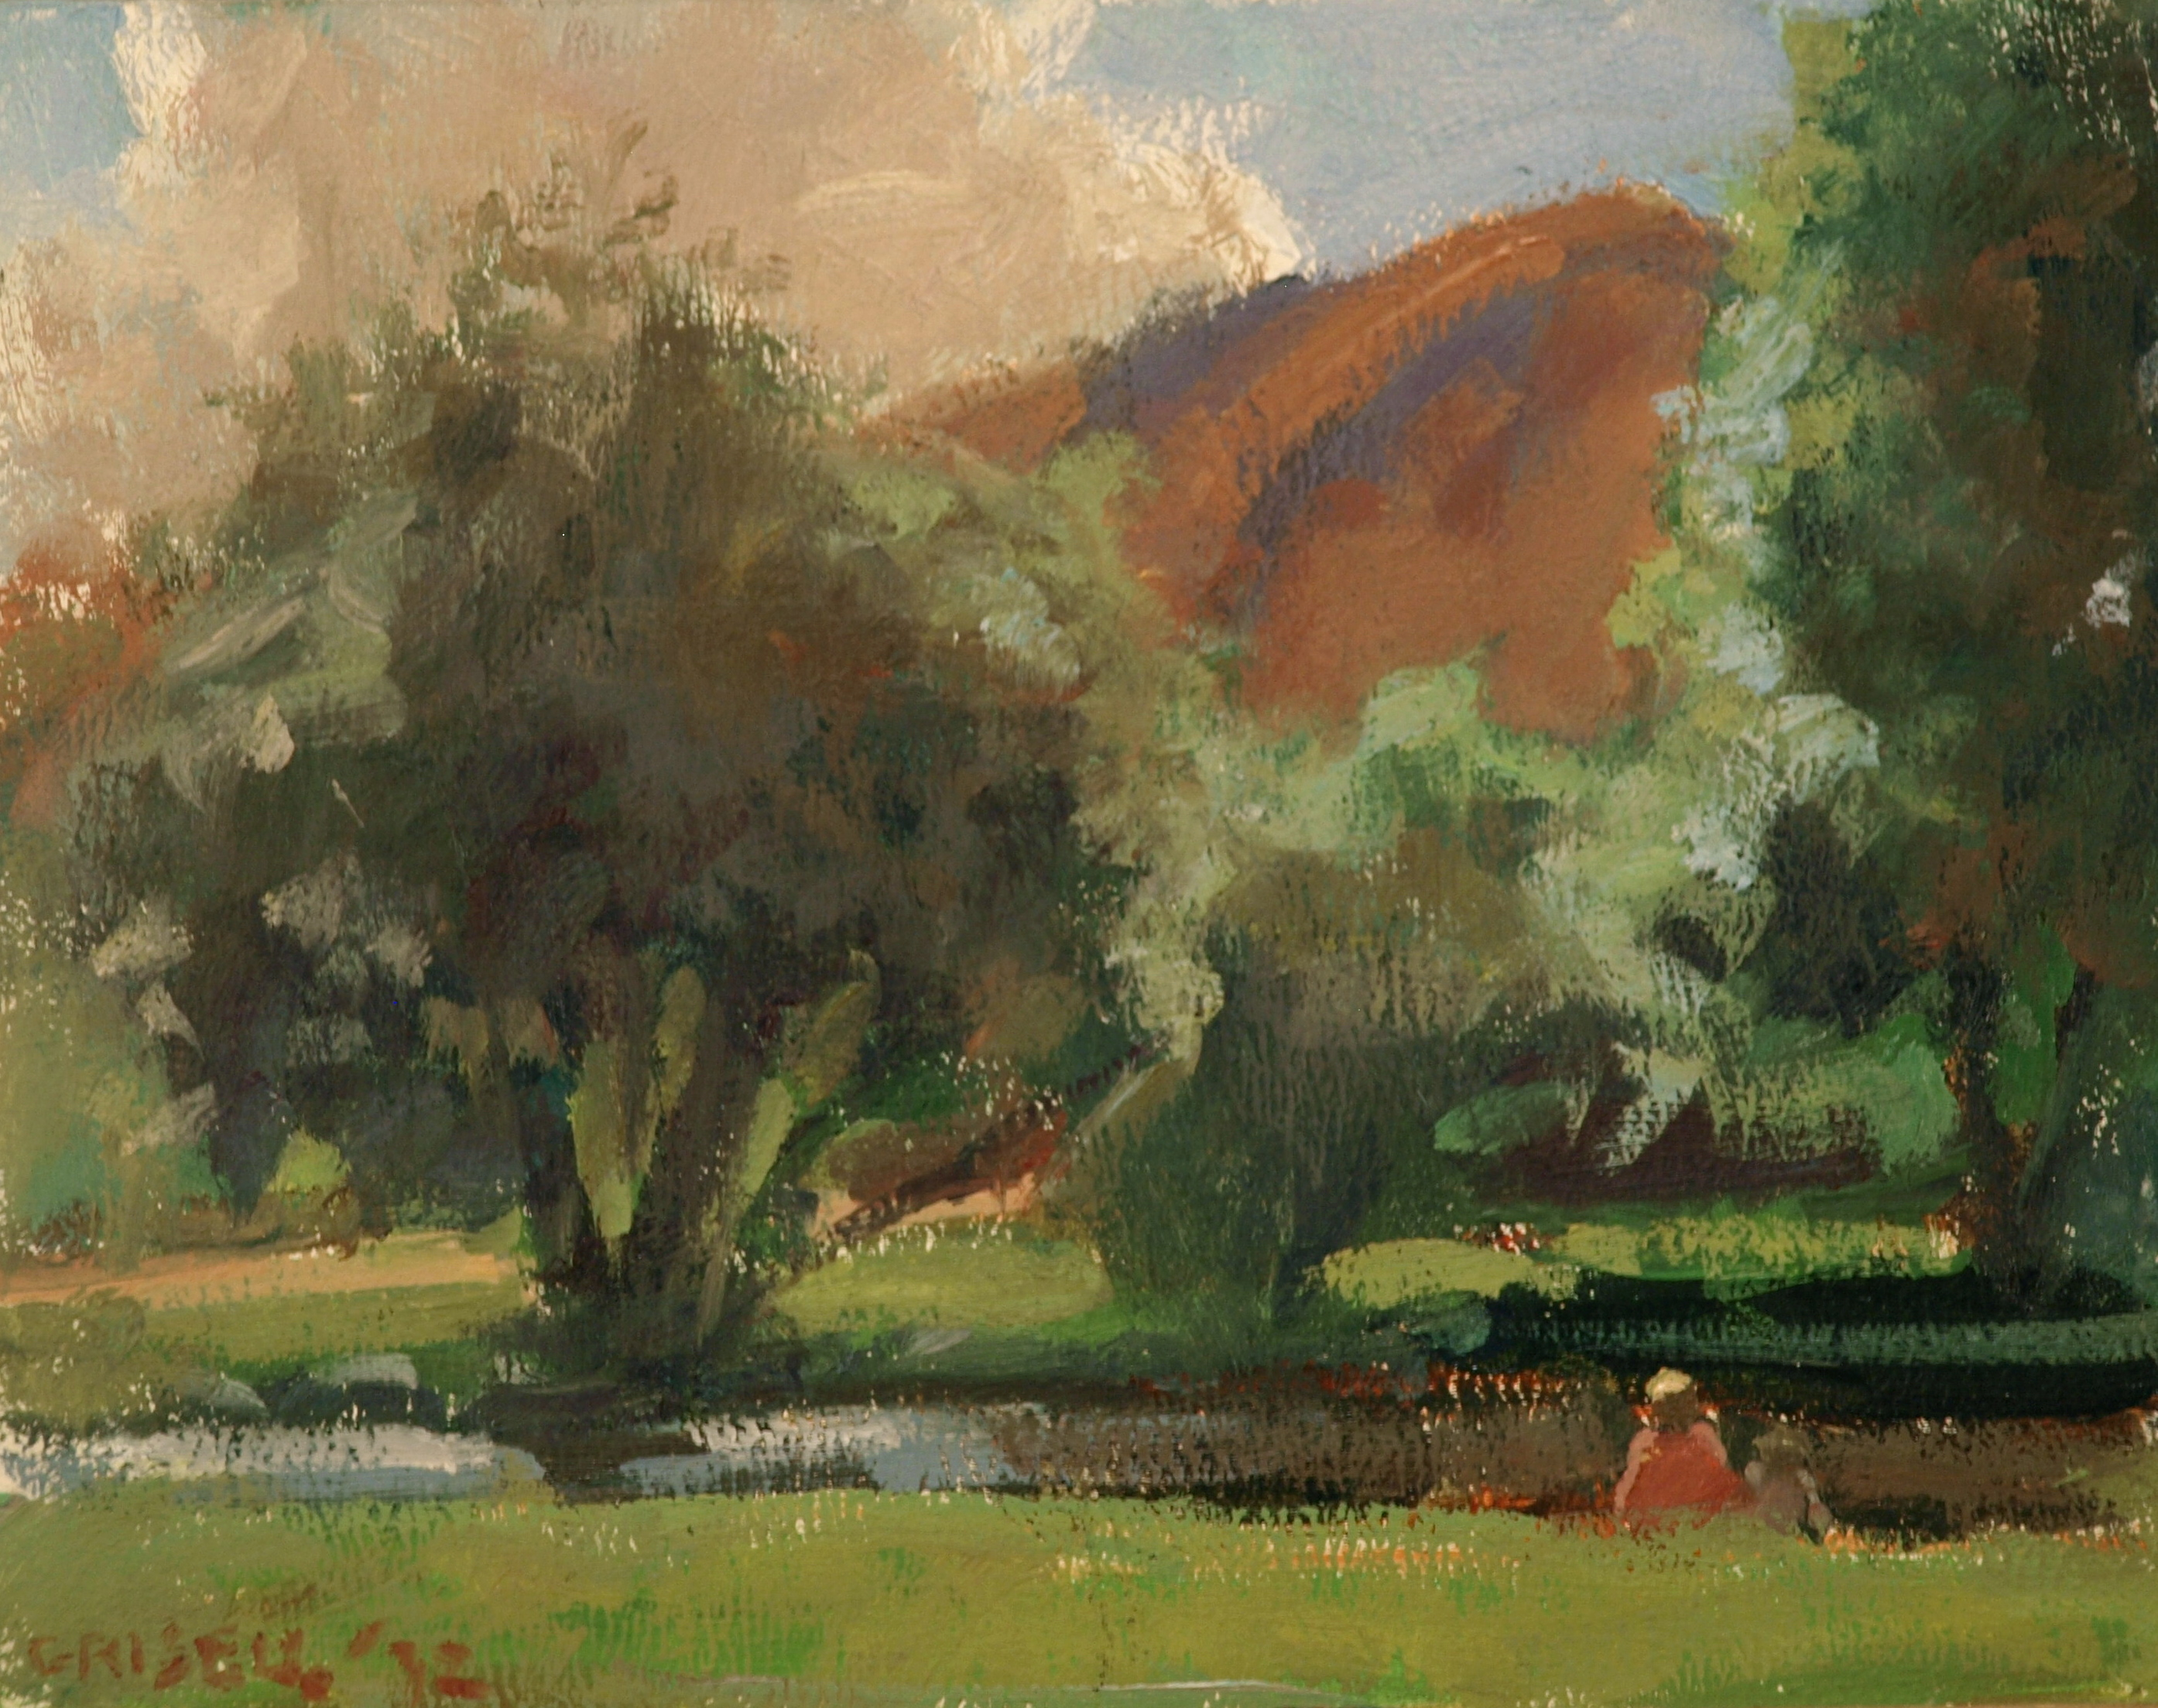 Park -- Jackson, Oil on Canvas on Panel, 8 x 10 Inches, by Susan Grisell, $150